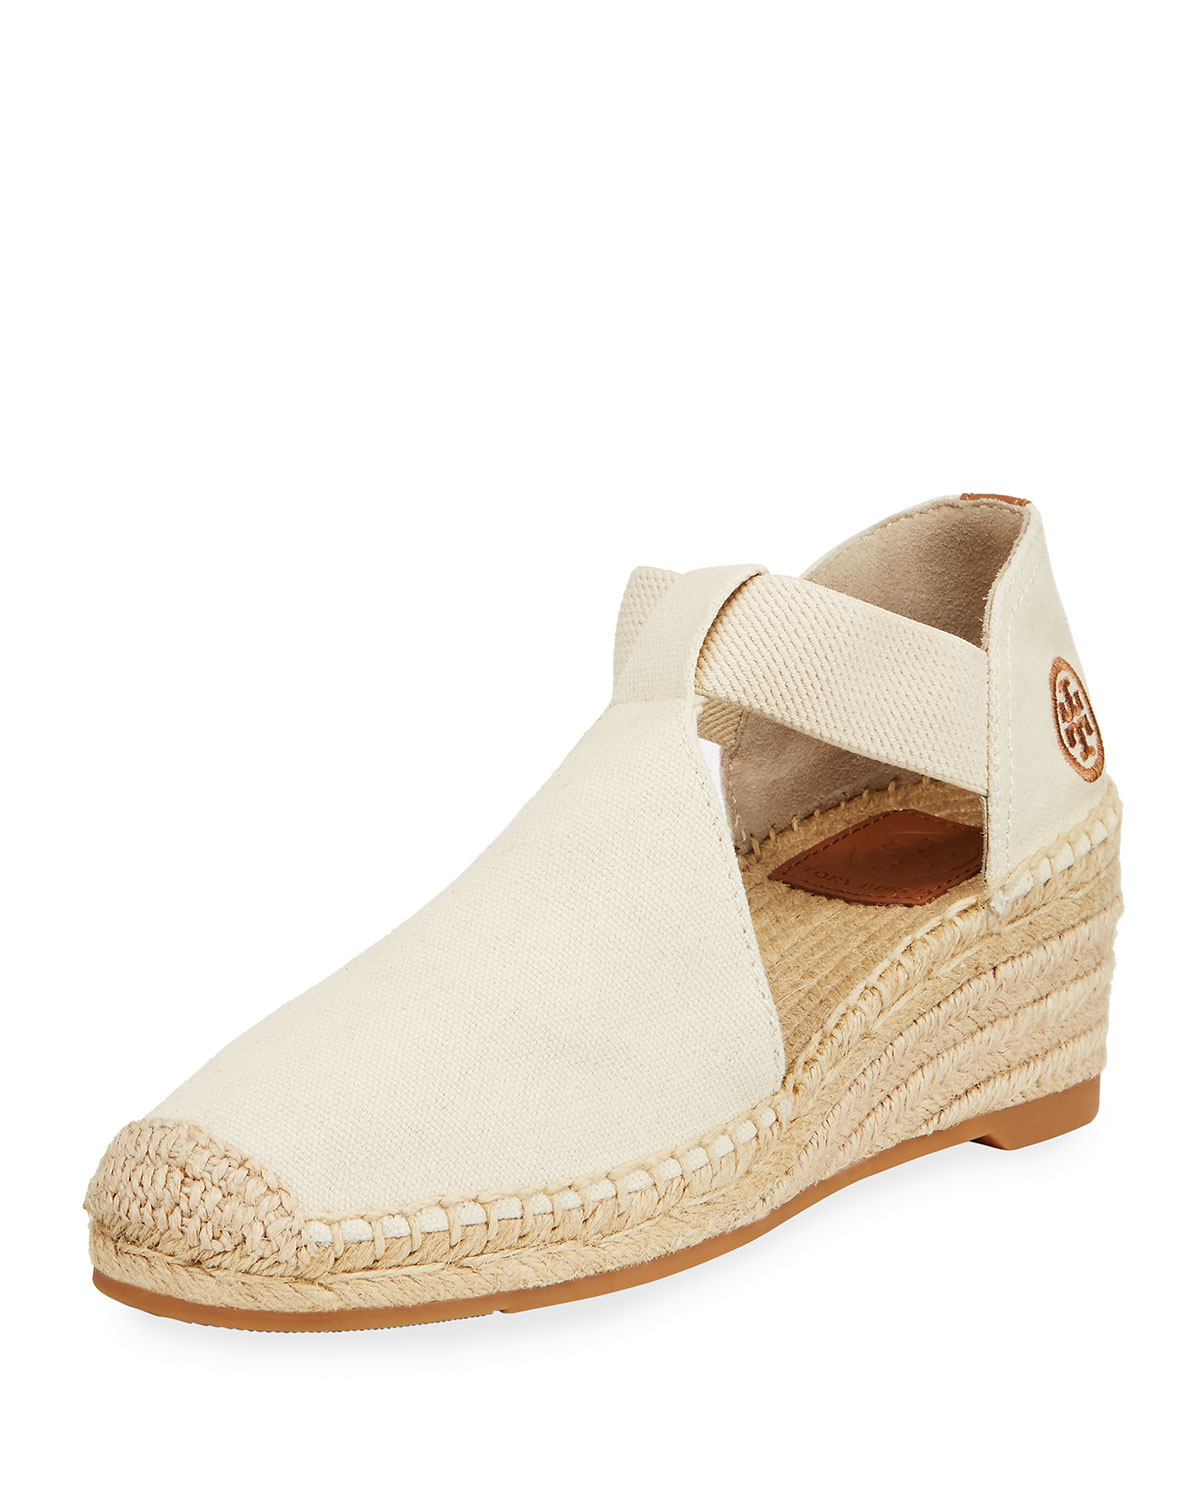 7fe72ef54d0 Tory Burch Catalina Canvas Espadrille